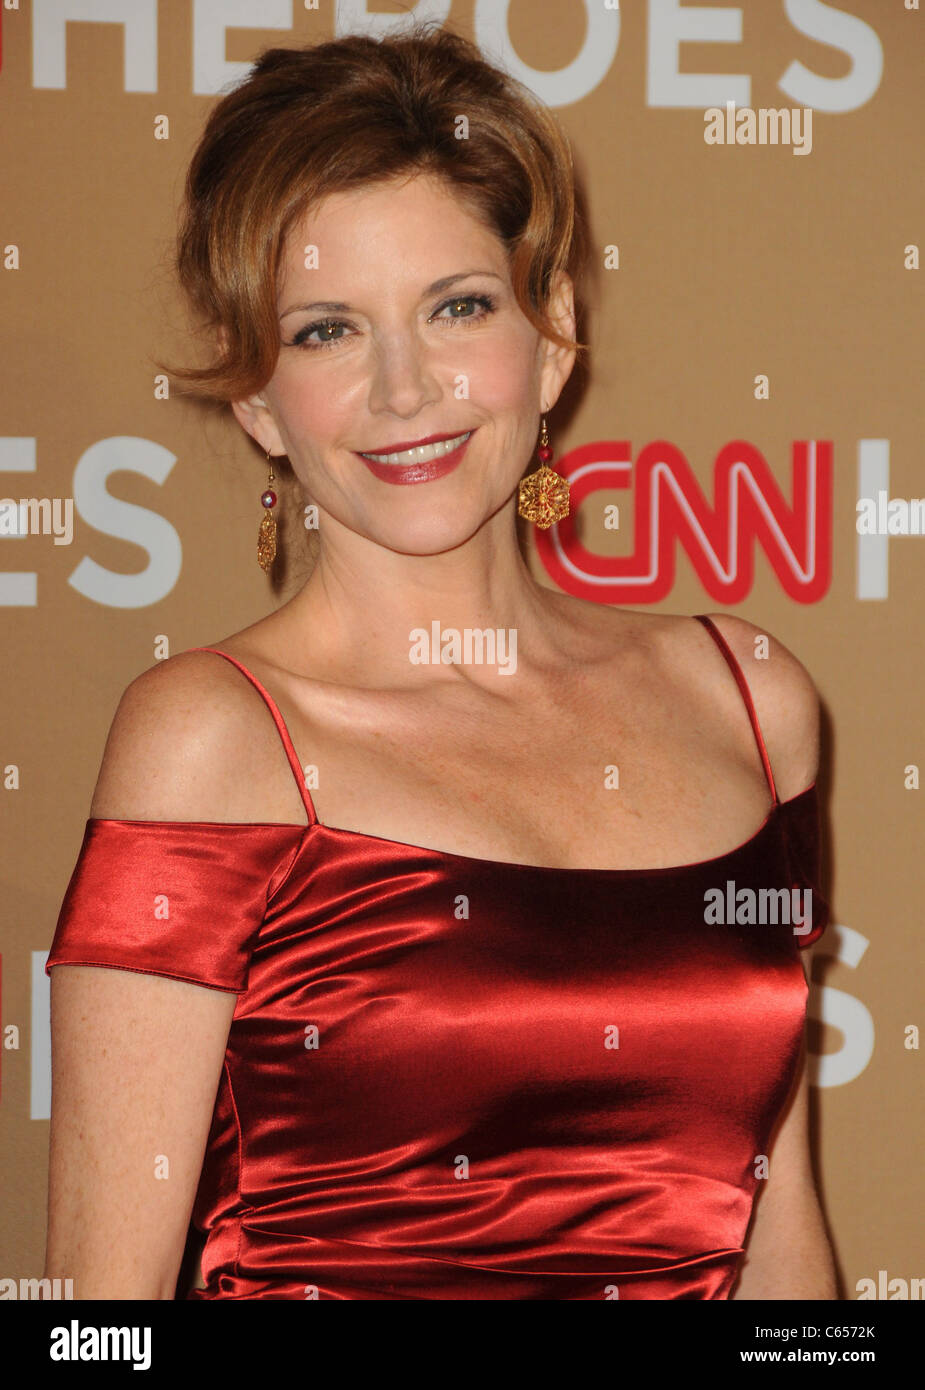 Melinda McGraw Melinda McGraw new photo